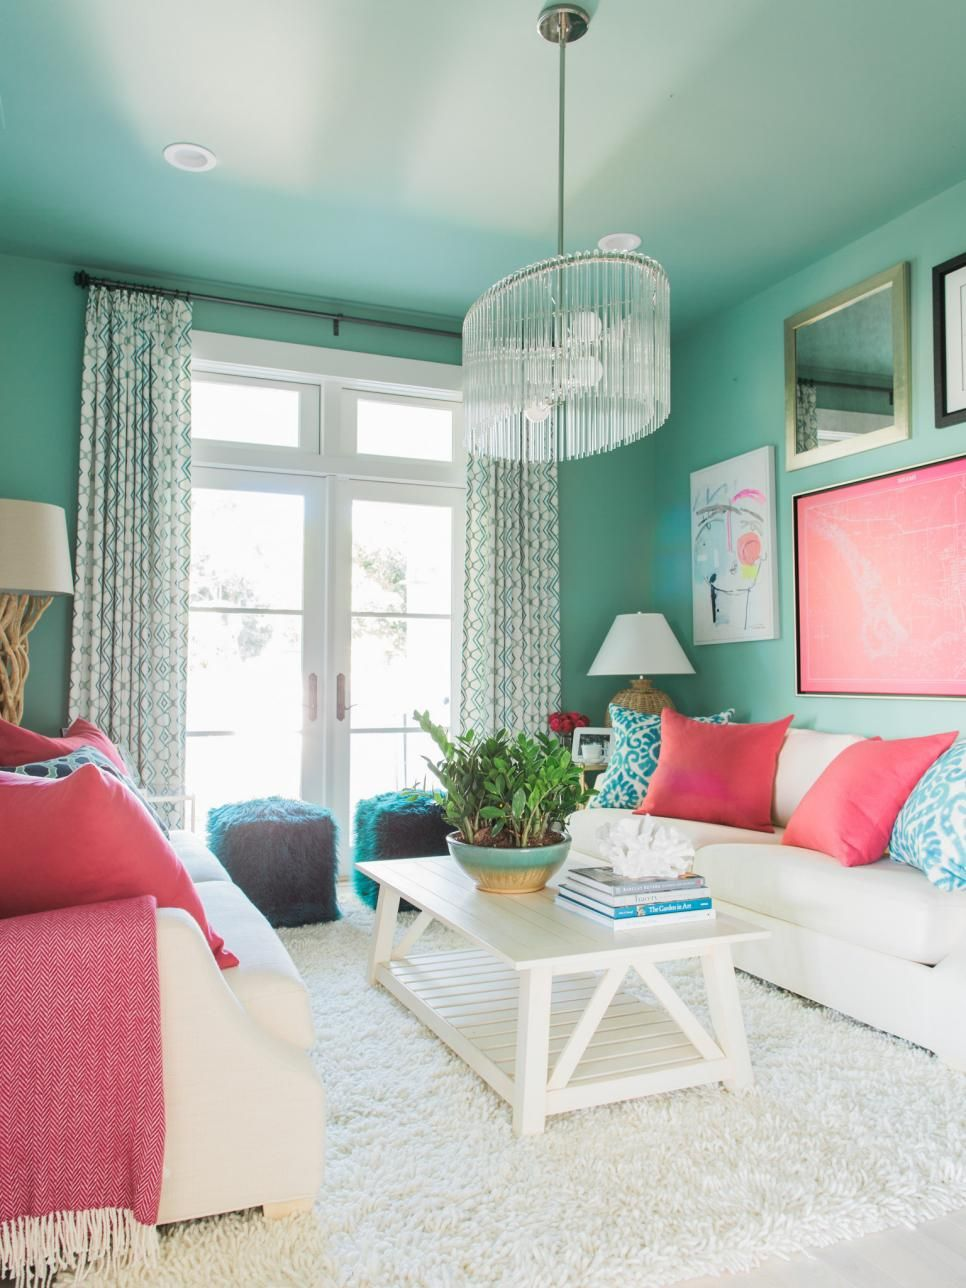 Media Room Pictures From HGTV Dream Home 2016 #mediarooms